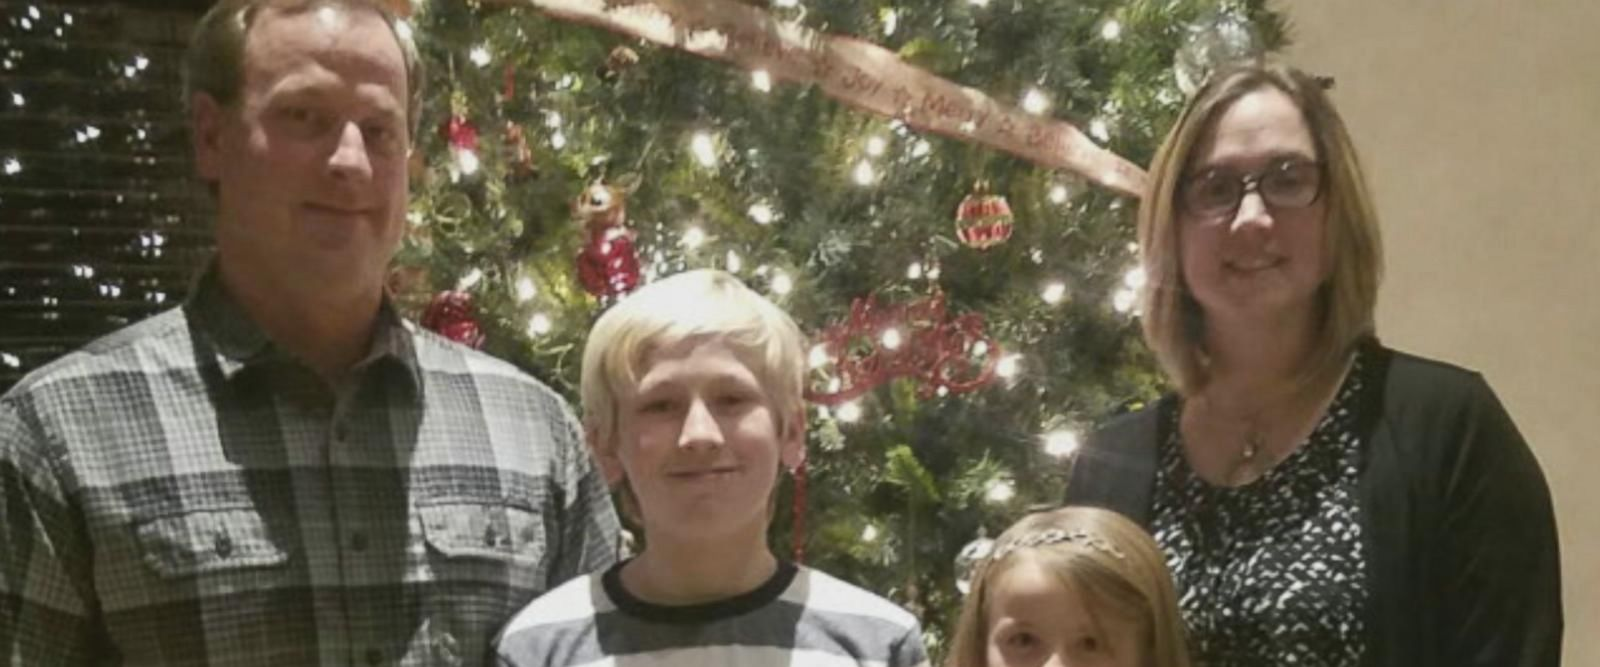 The bodies of Kevin Wayne Sharp, 41; his wife, Amy Marie Sharp, 38; Sterling Wayne Sharp, 12; and Adrianna Marie Sharp, 7, were found at the condominium where they were staying in Tulum.